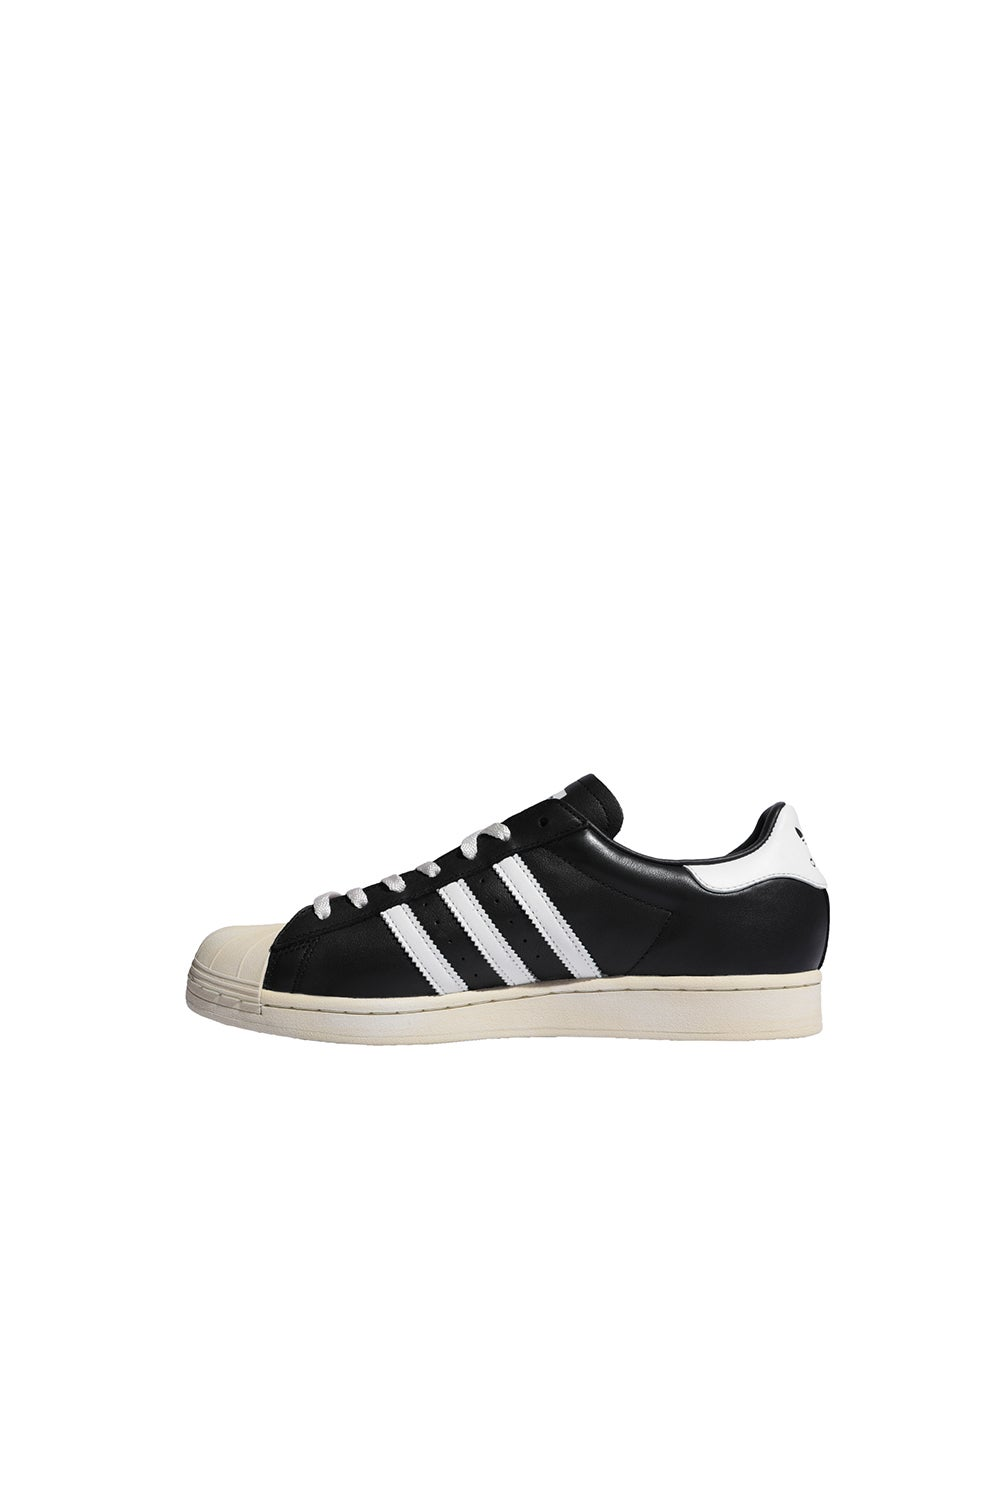 adidas Superstar Shoes Core Black